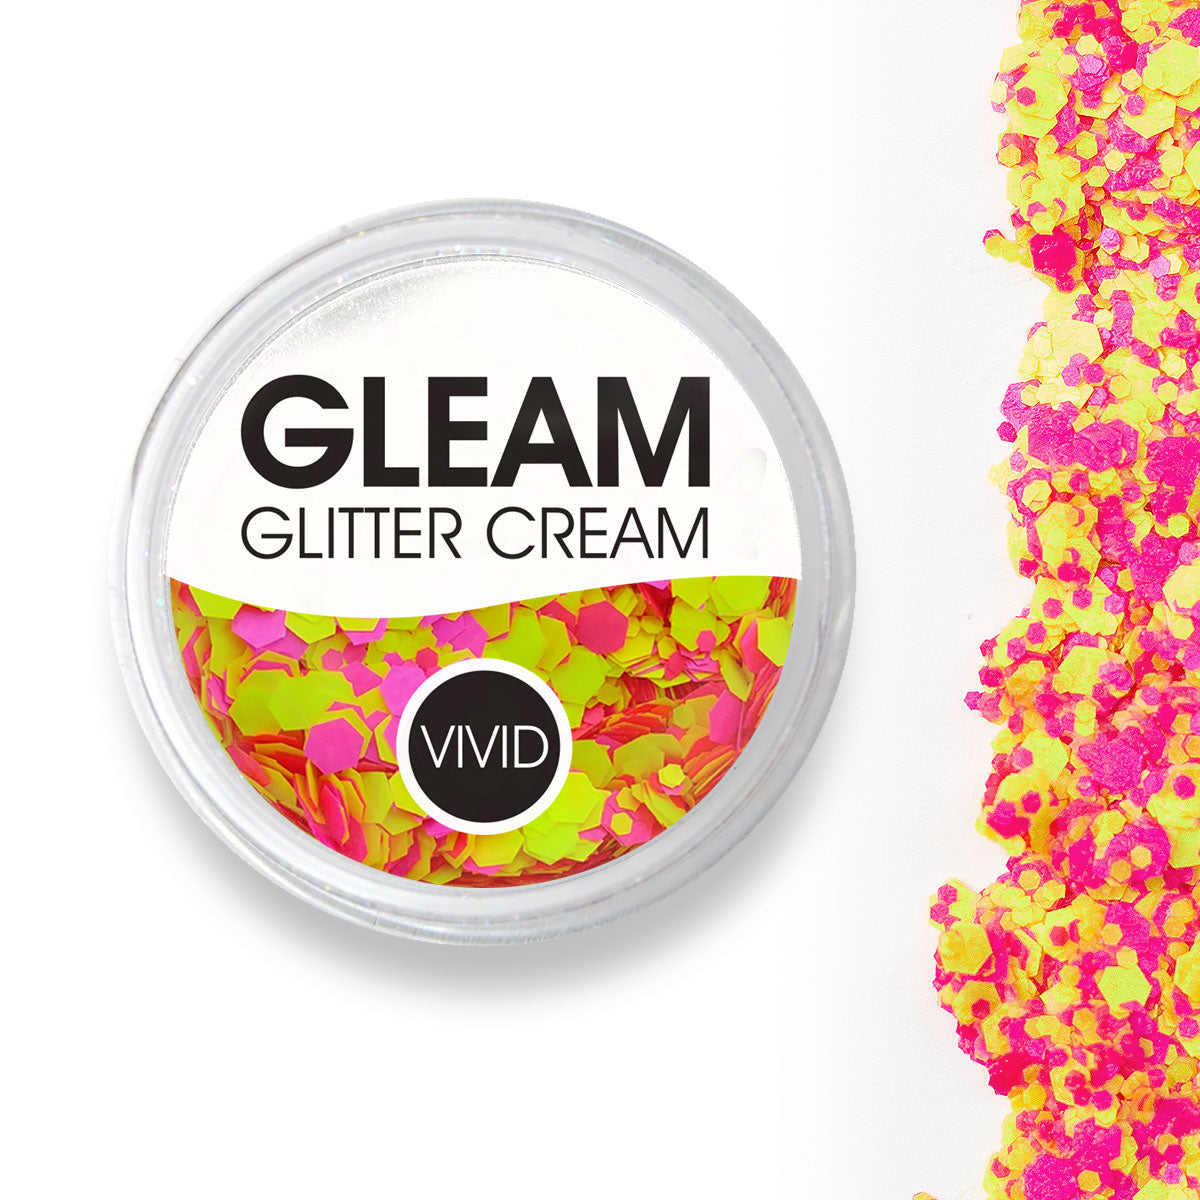 Antigravity - Gleam UV Chunky Glitter Cream